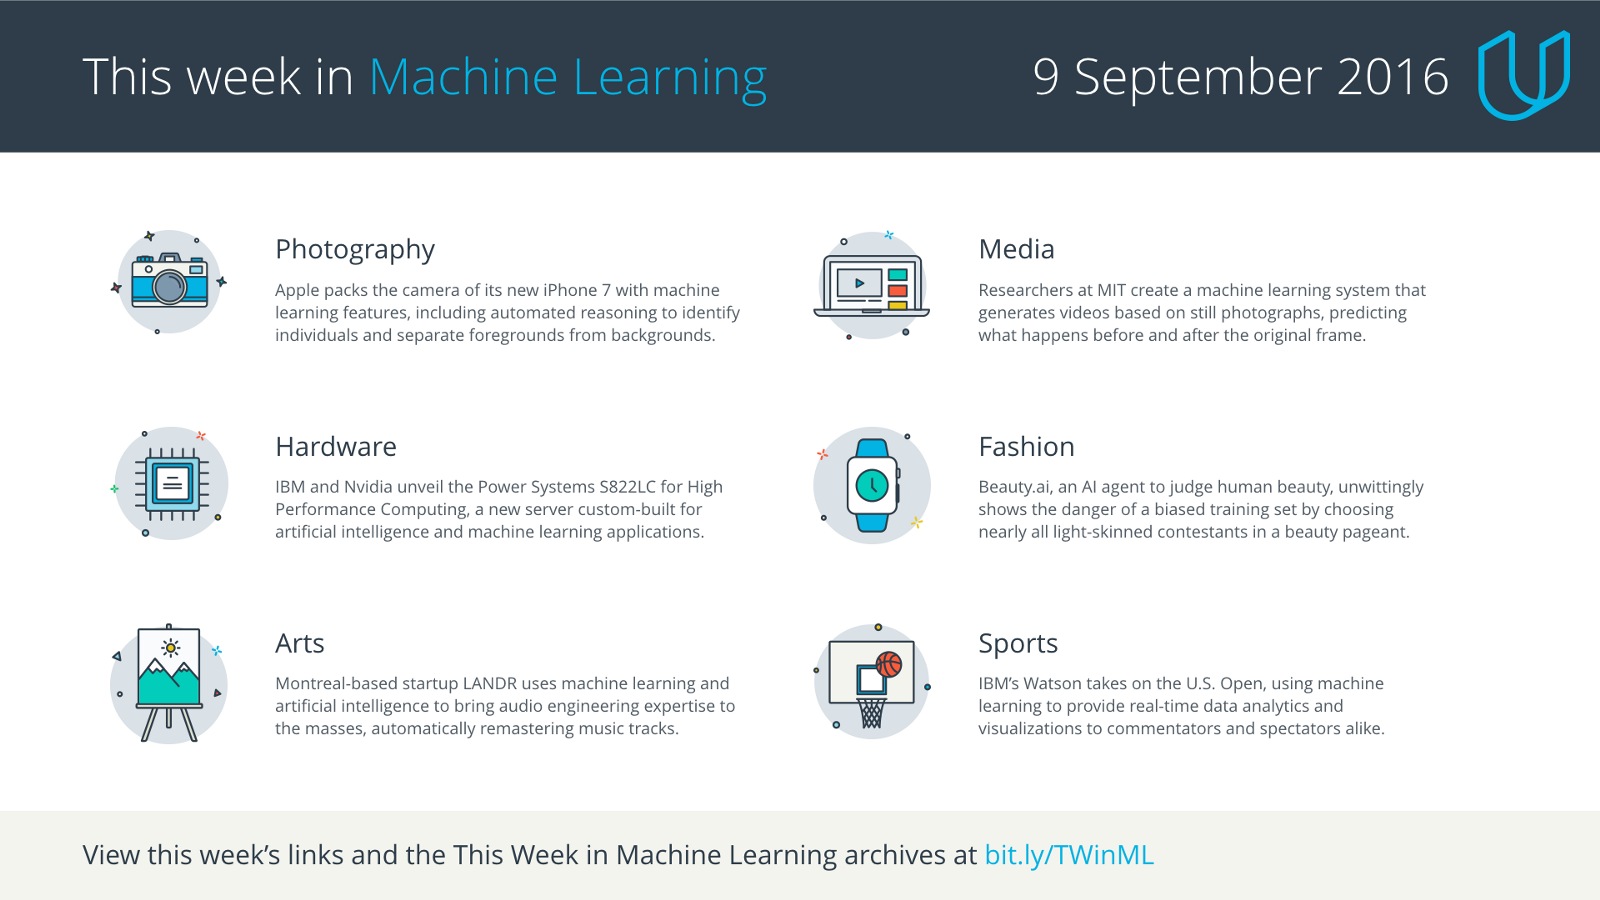 This Week in Machine Learning, 9 September 2016